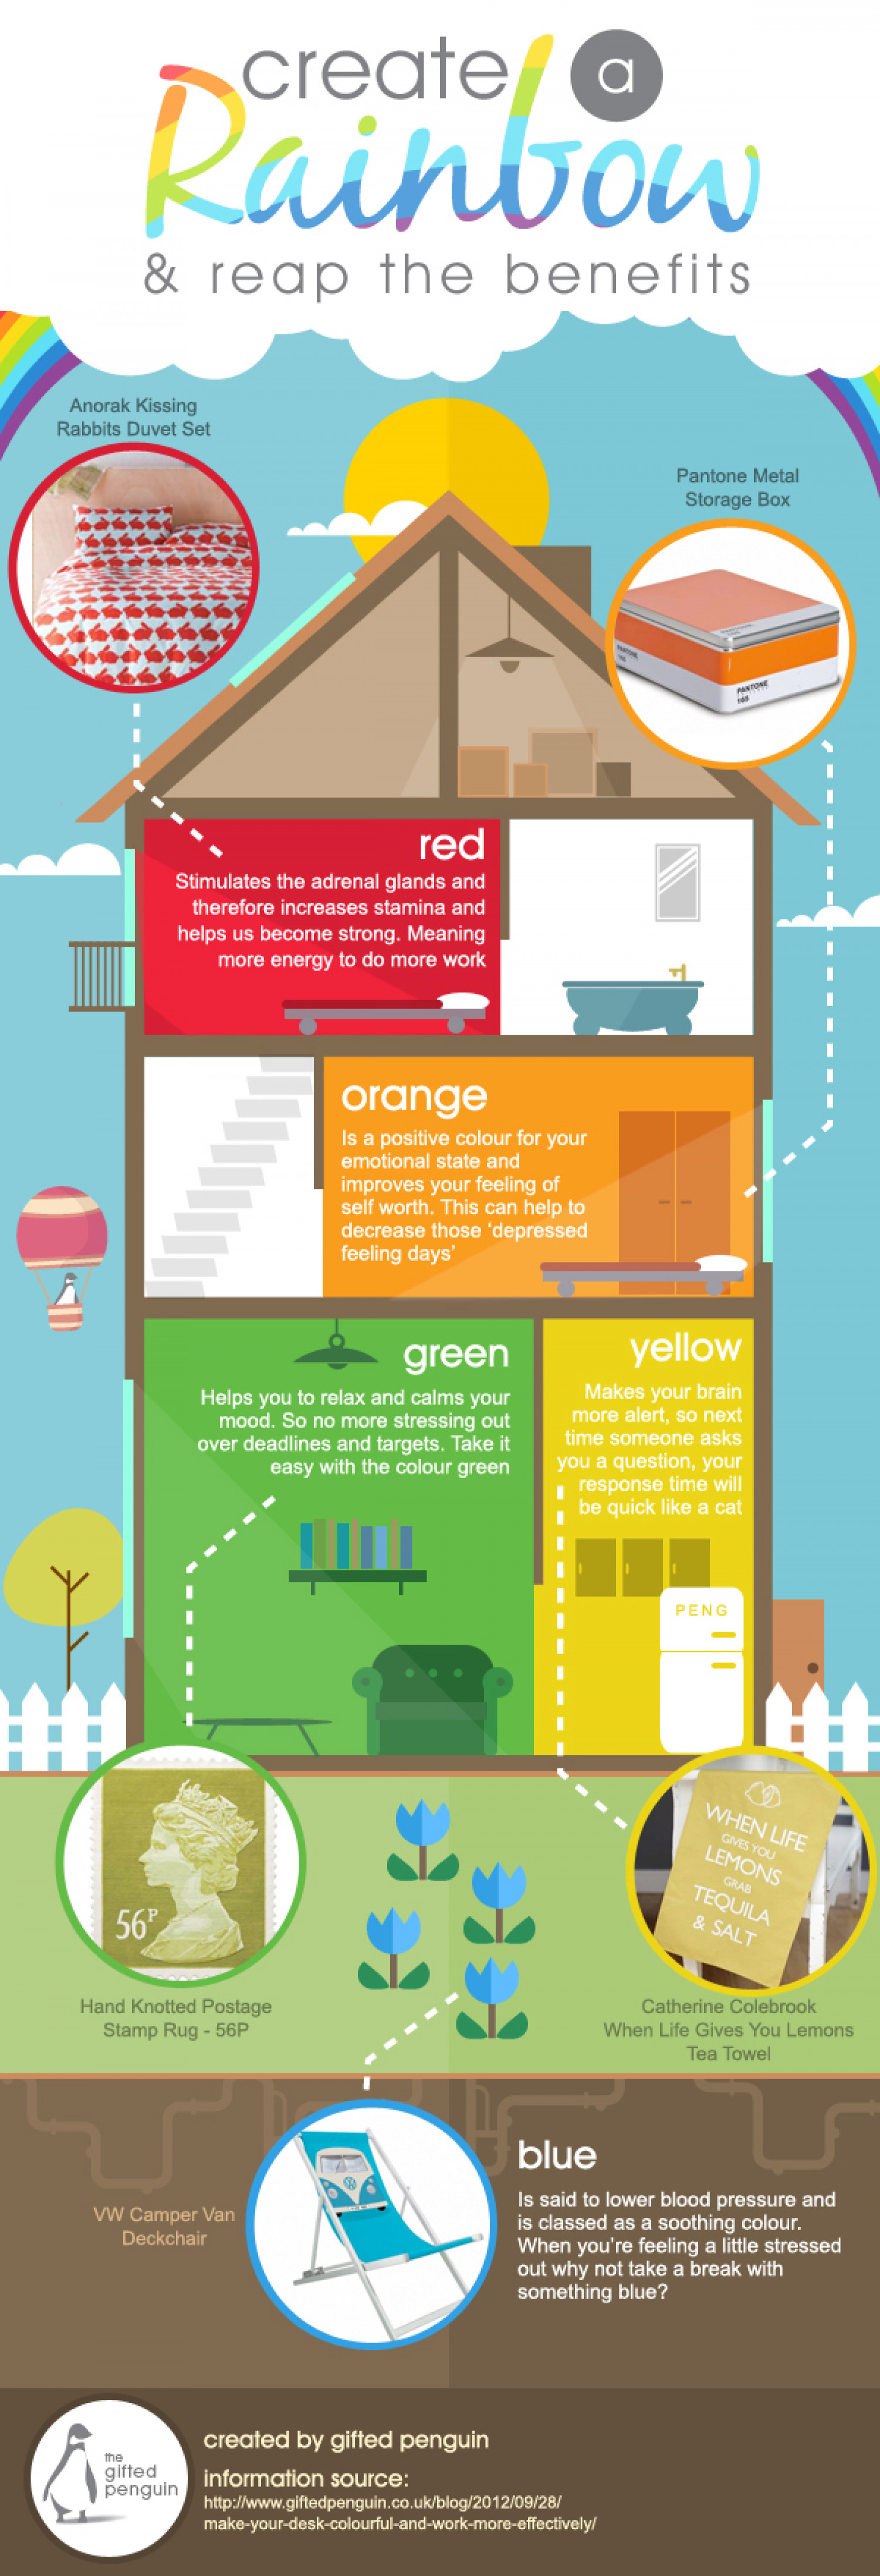 Create A Rainbow And Reap The Benefits Infographic